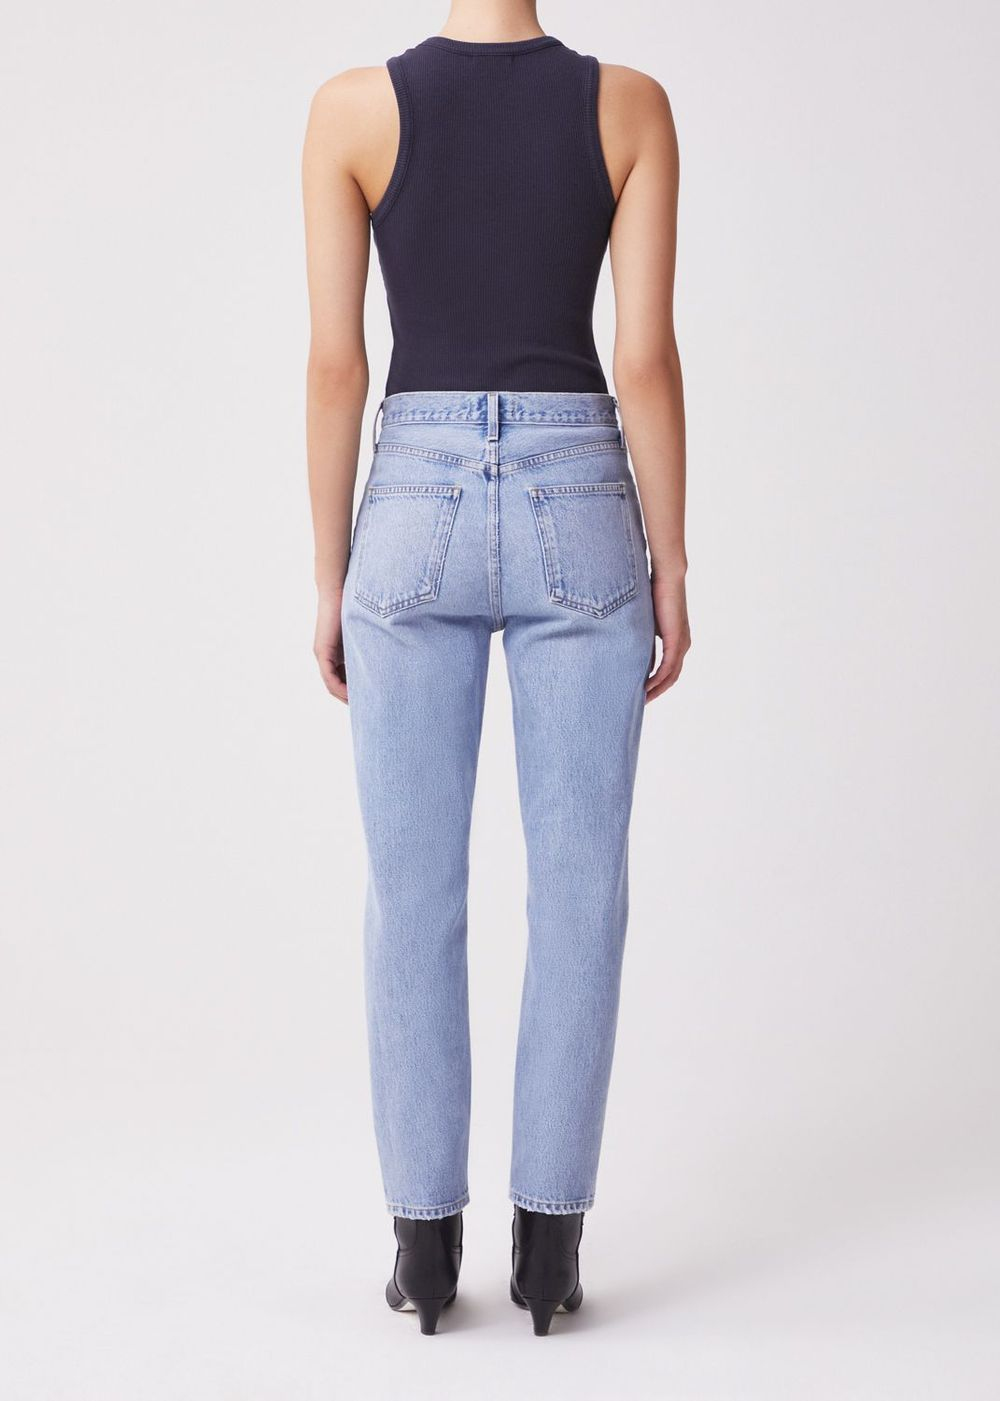 Jeans, Fen, Agolde, Relaxed Fit, 4276